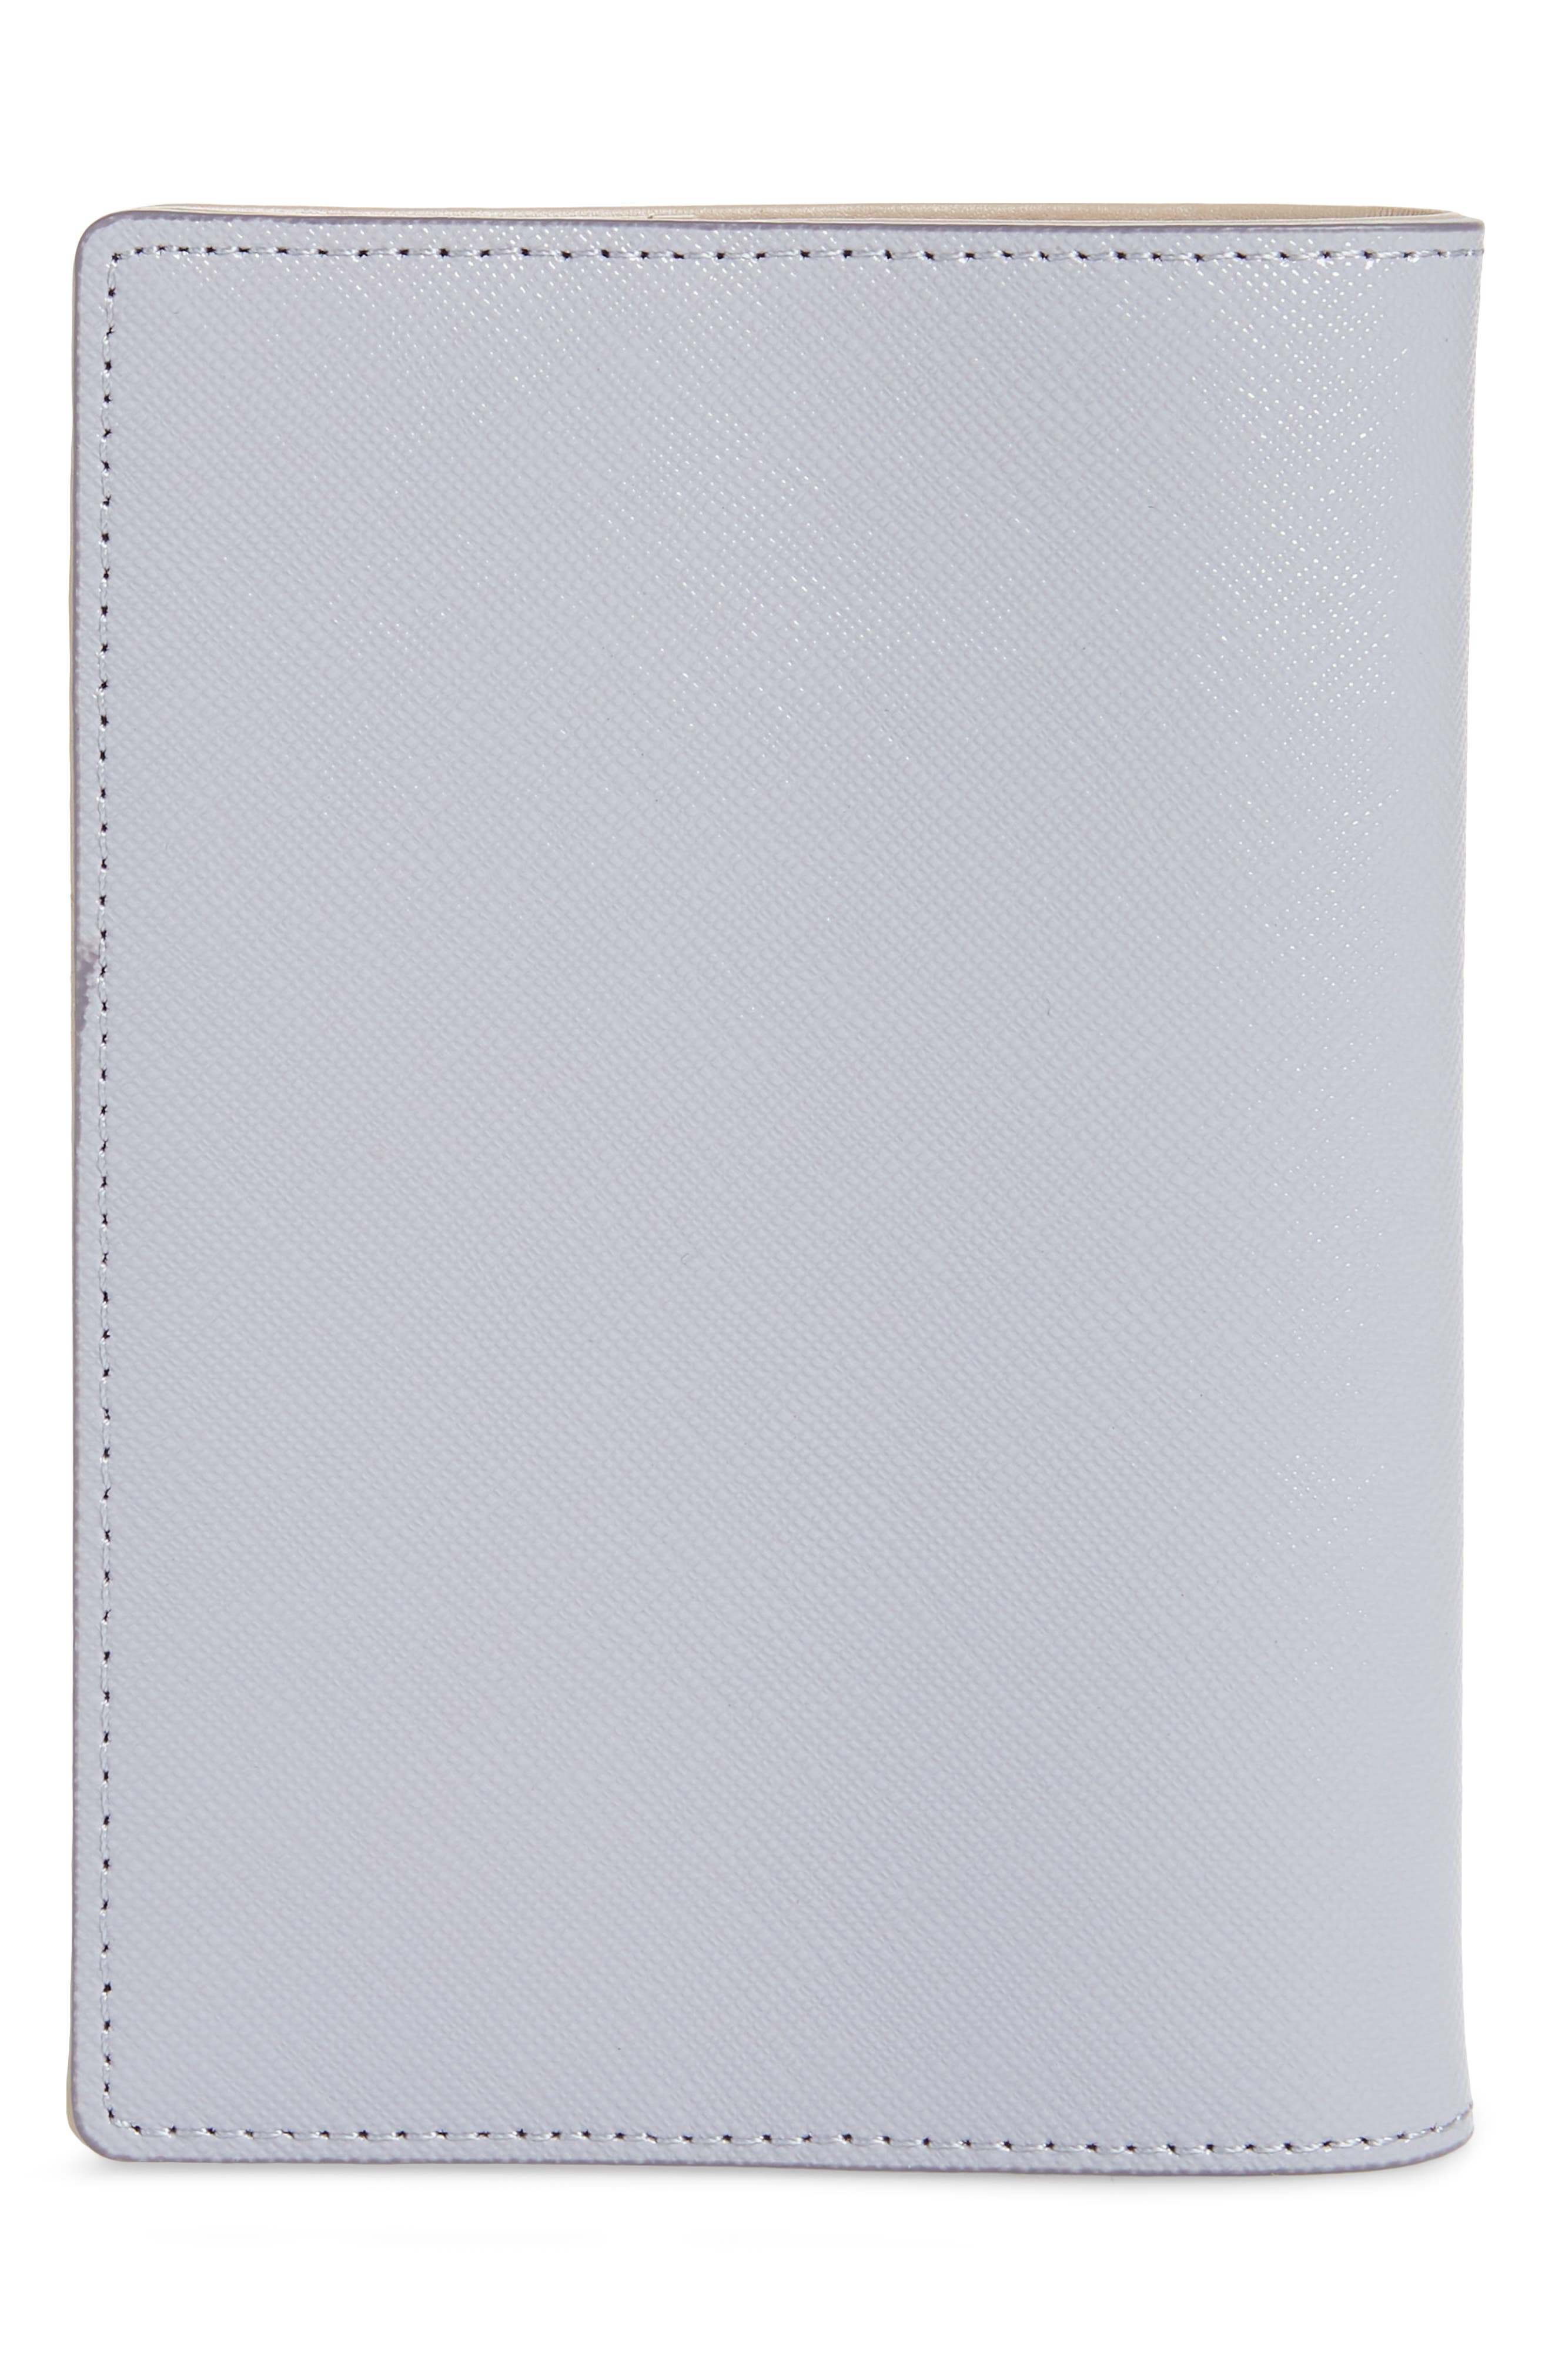 Saffiano Leather Passport Holder,                             Alternate thumbnail 4, color,                             GREY LILAC